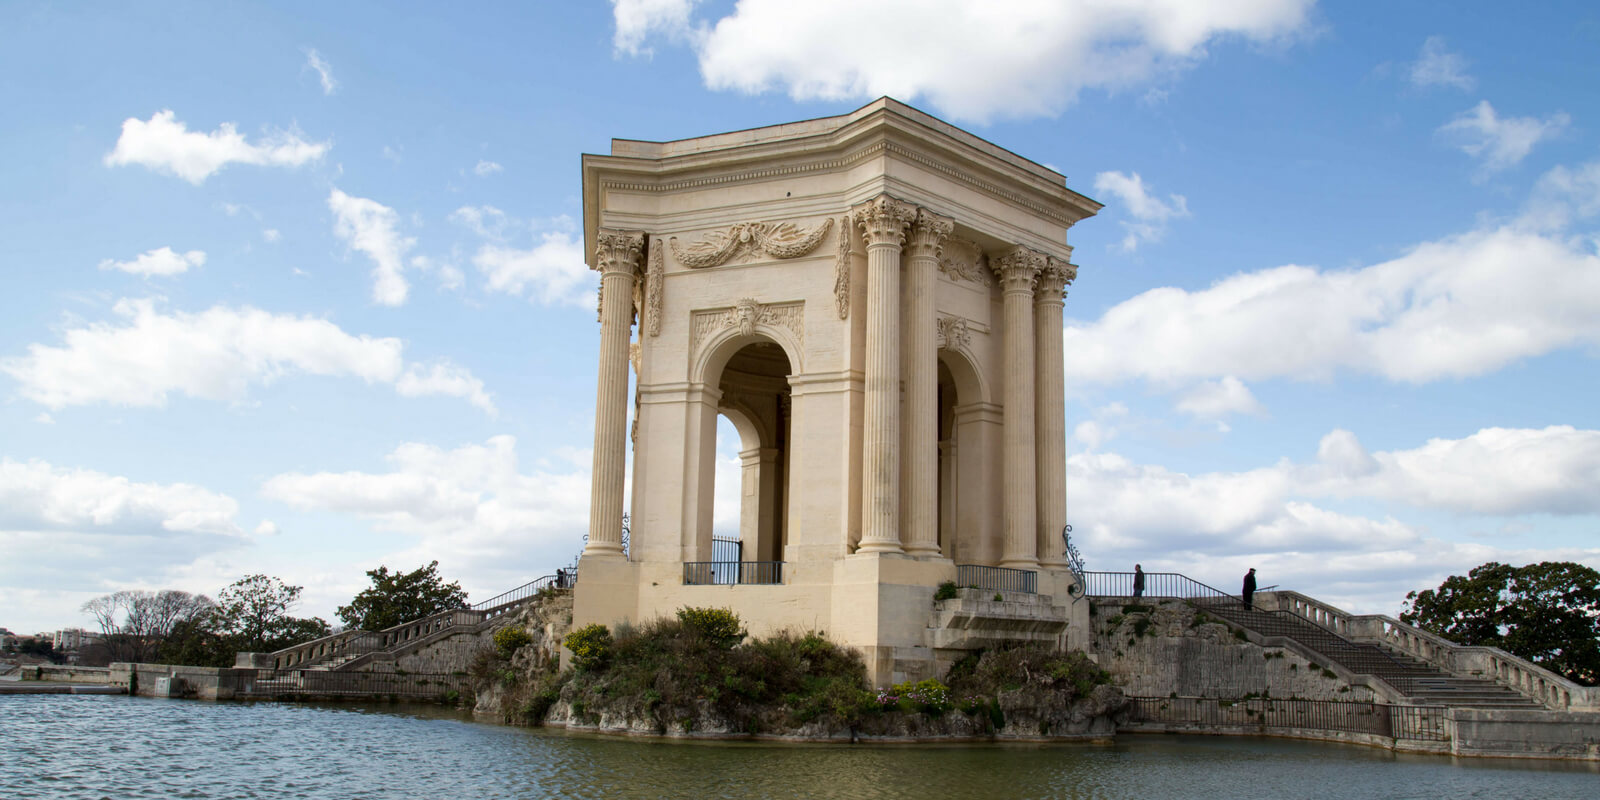 Château d'eau du Perou: Best Things to Do in the Montpellier Area